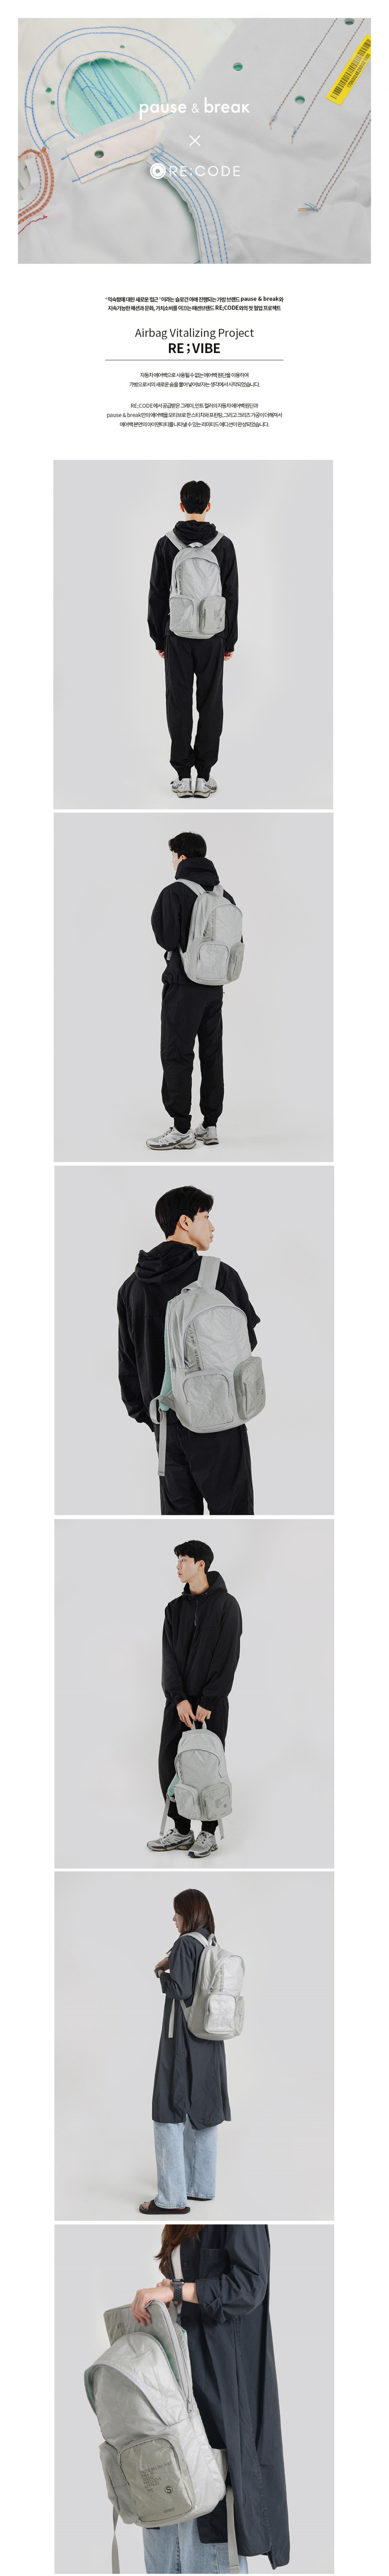 파우즈앤브레이크(PAUSENBREAK) RE;VIBE Airbag Backpack